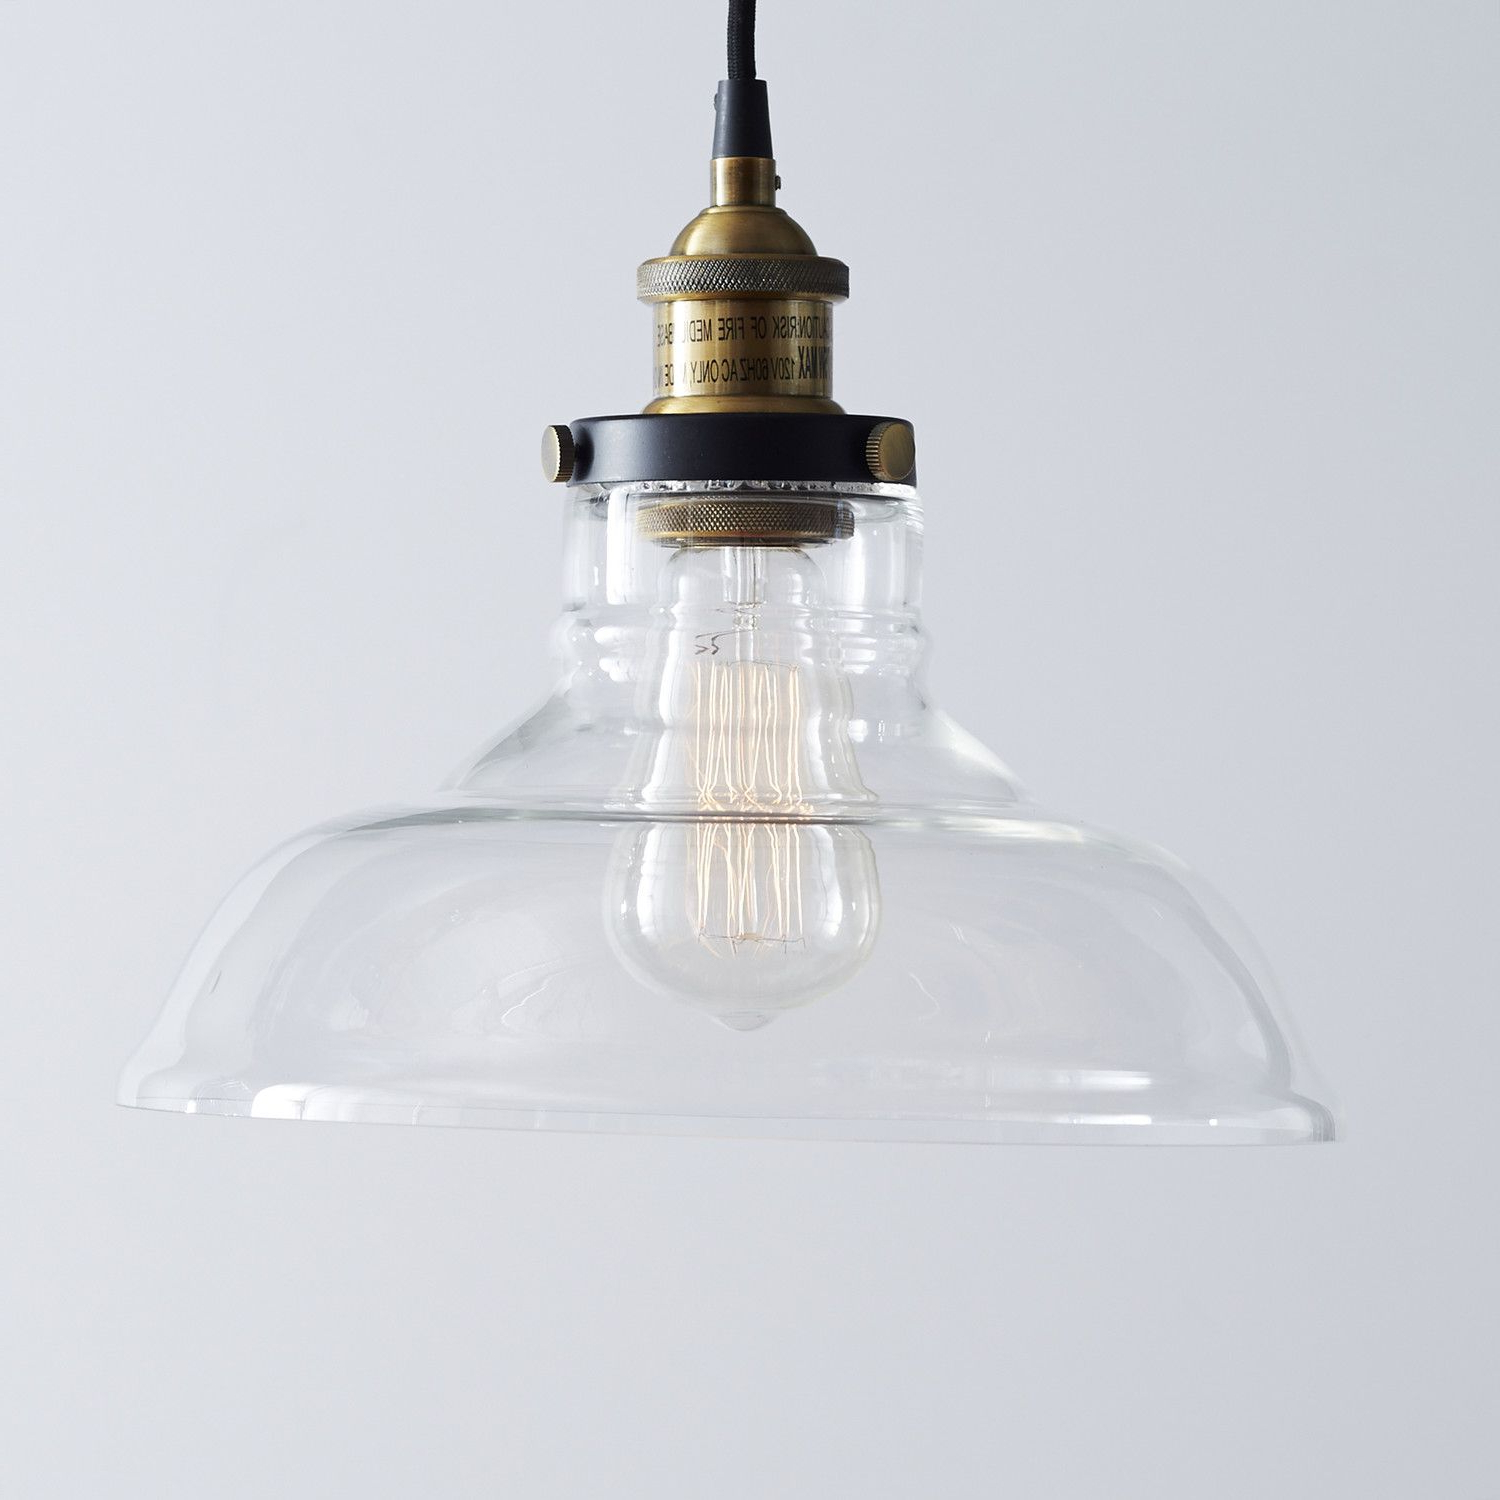 Ideas For Our New Regarding 1 Light Single Bell Pendants (Gallery 23 of 25)